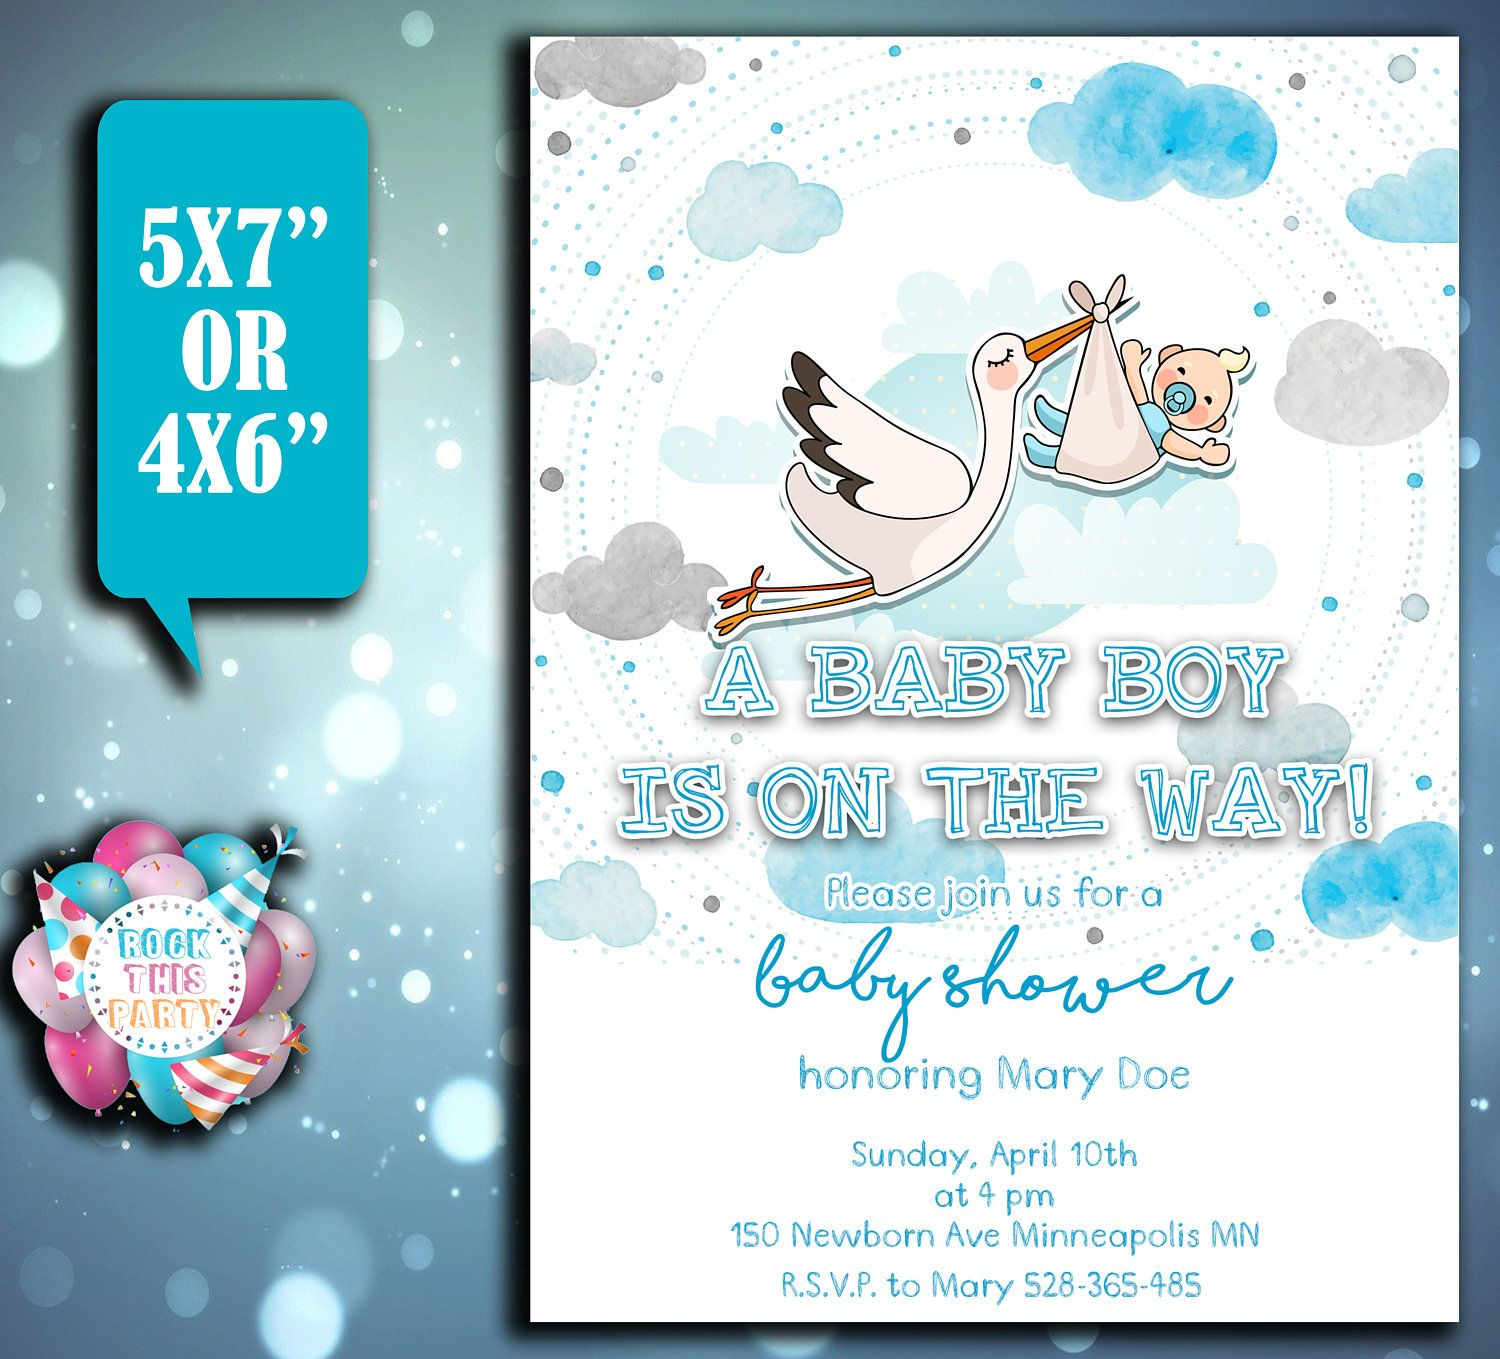 Customized BABY SHOWER invitation party supplies BABY invitation